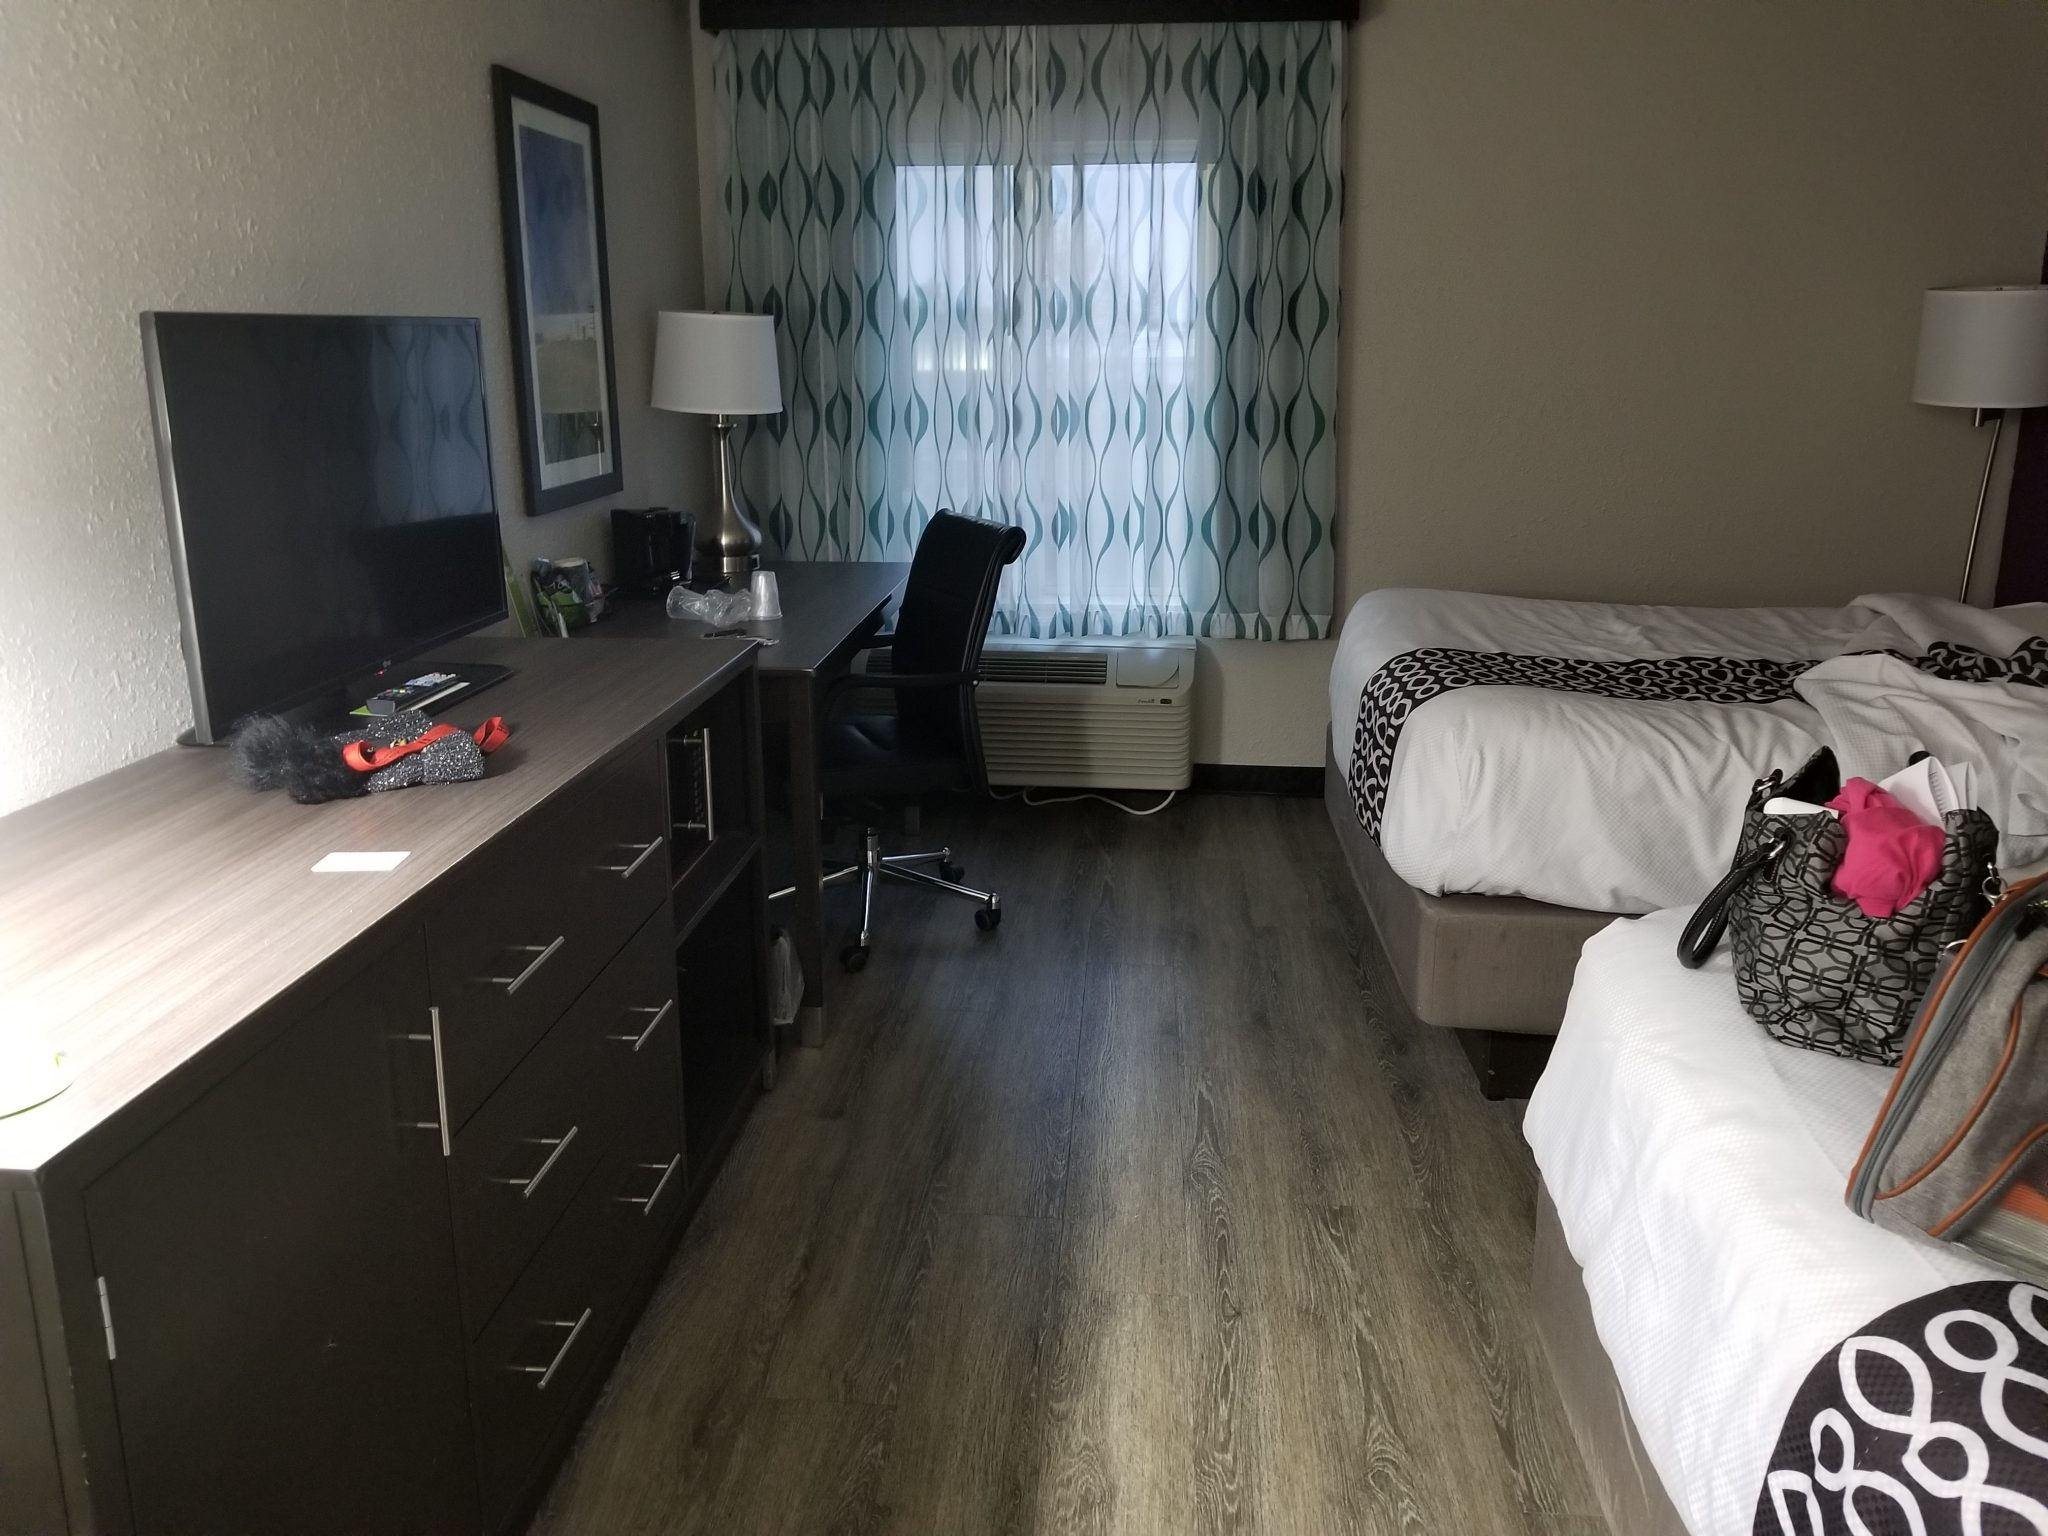 Four Hotels In 5 Days: Day 2